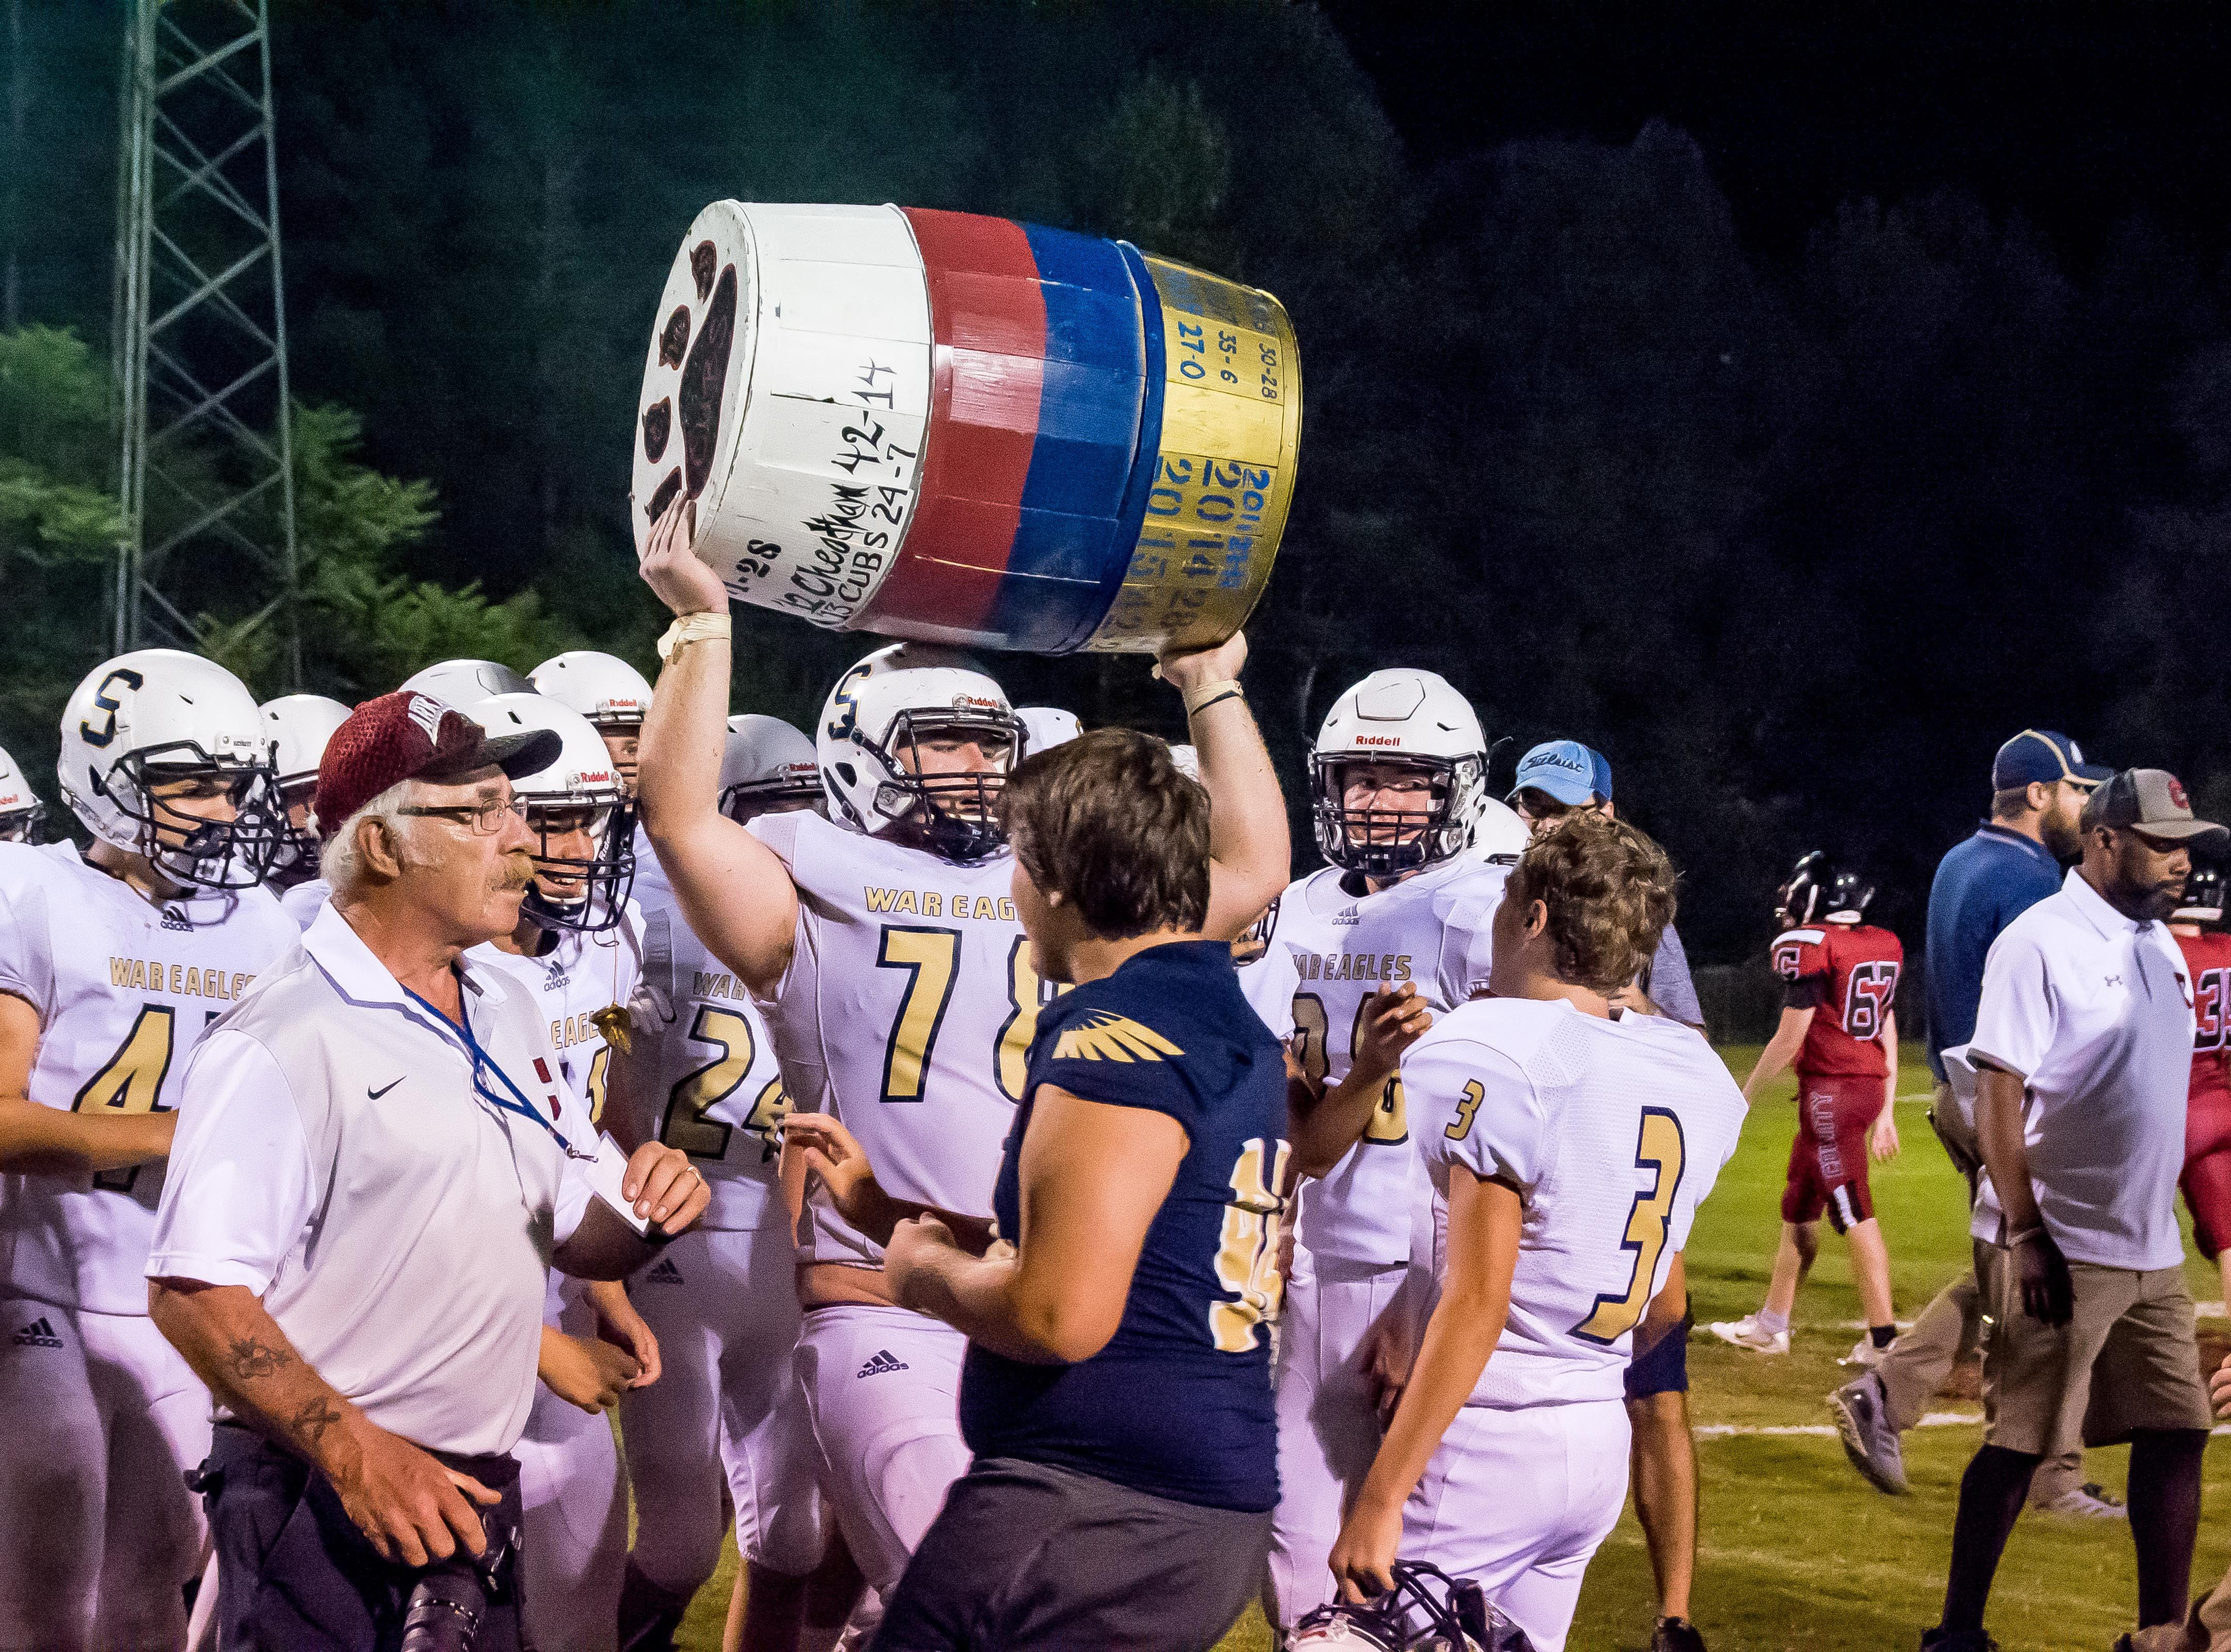 Zachary Sullivan grabs the powder keg after Sycamore defeated Cheatham County.